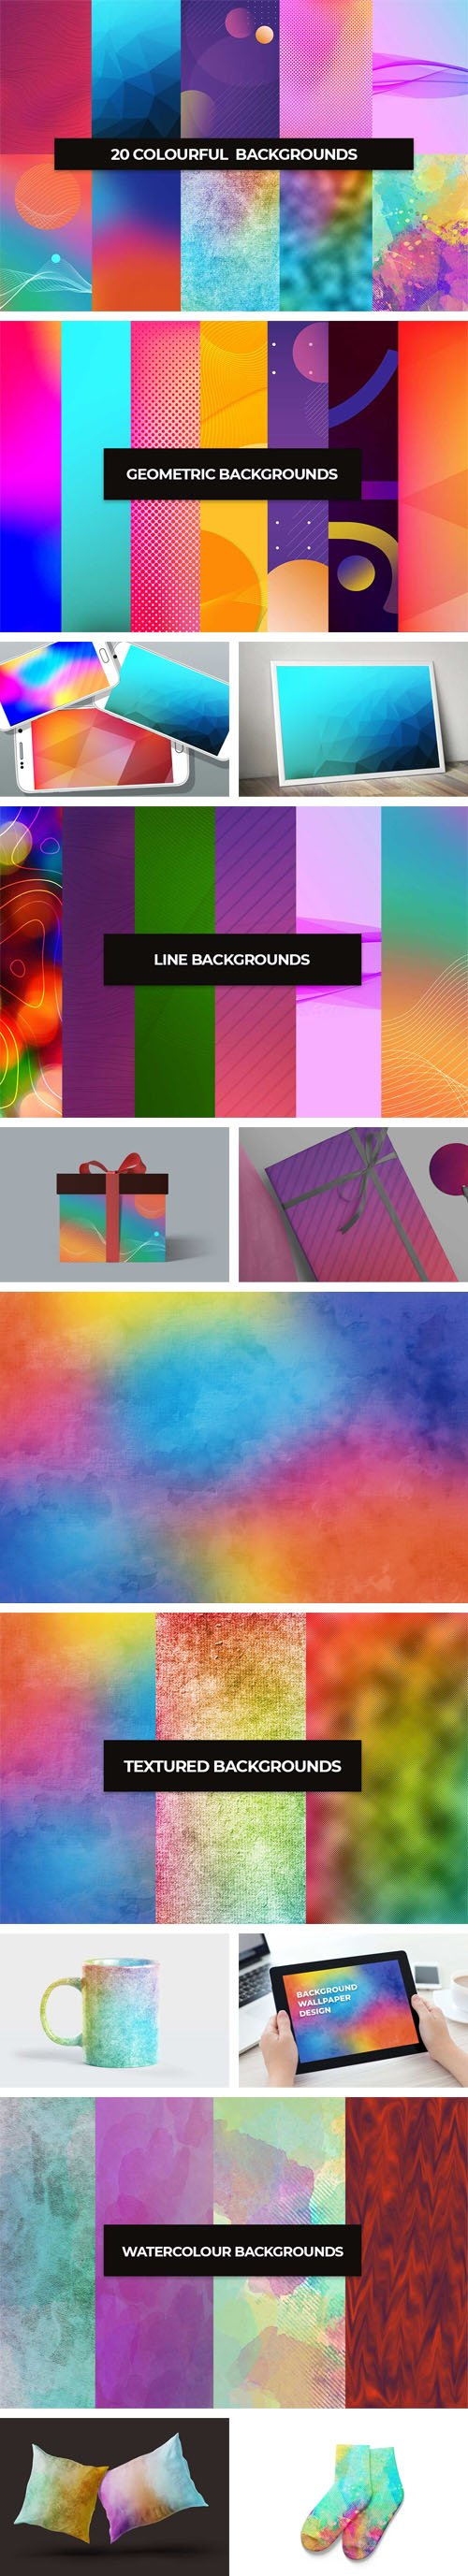 20 Colourful Backgrounds Collection